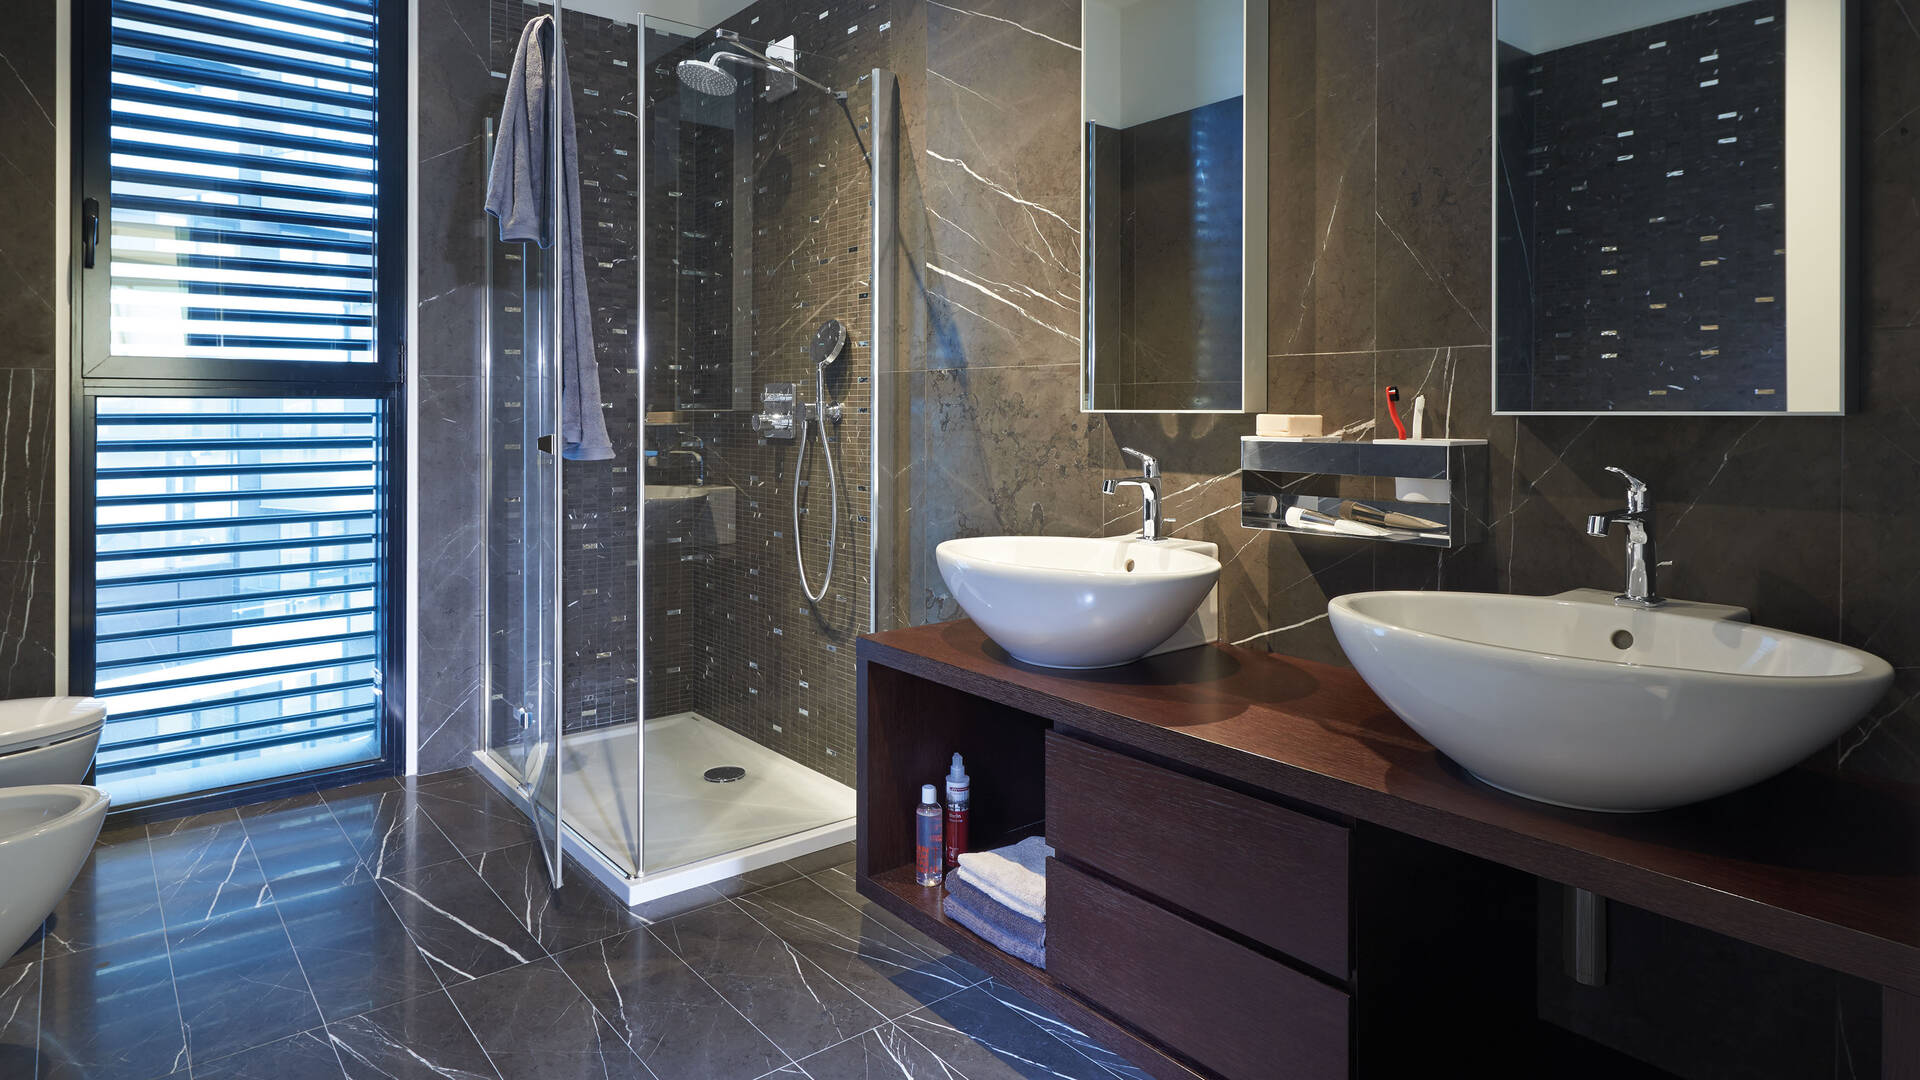 Bathroom Design In Small Space Axor Int